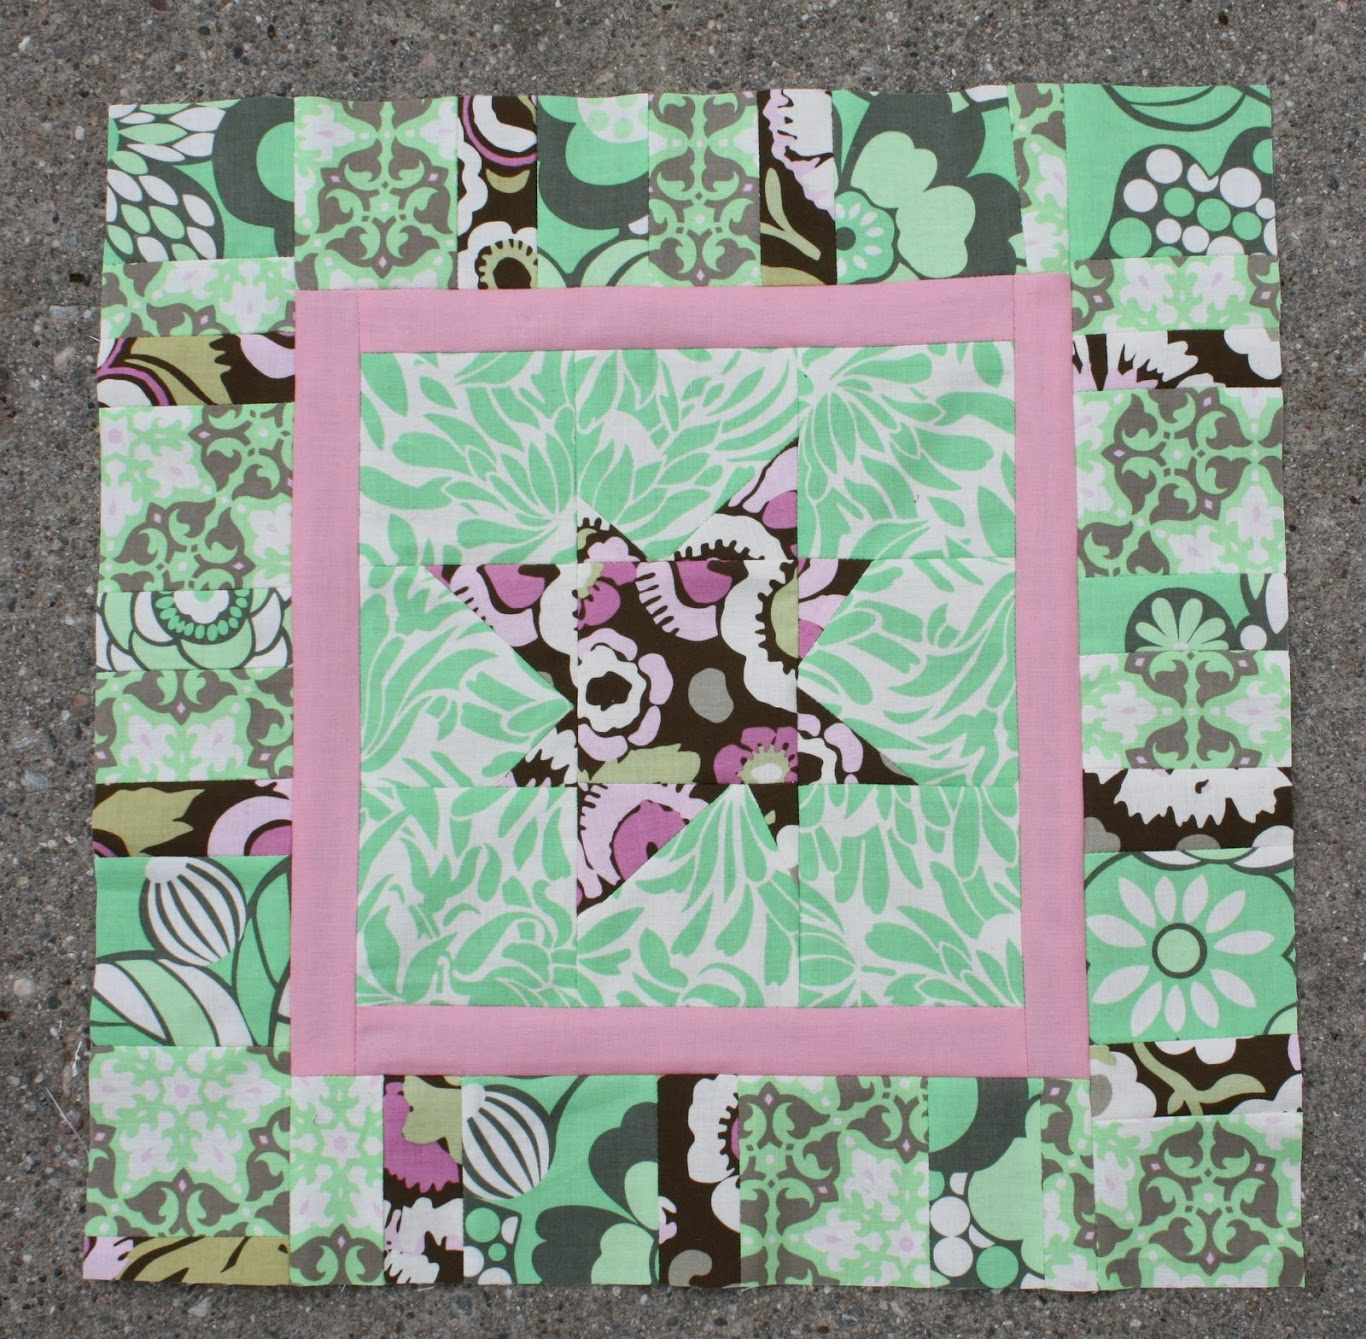 April's quilting bee block